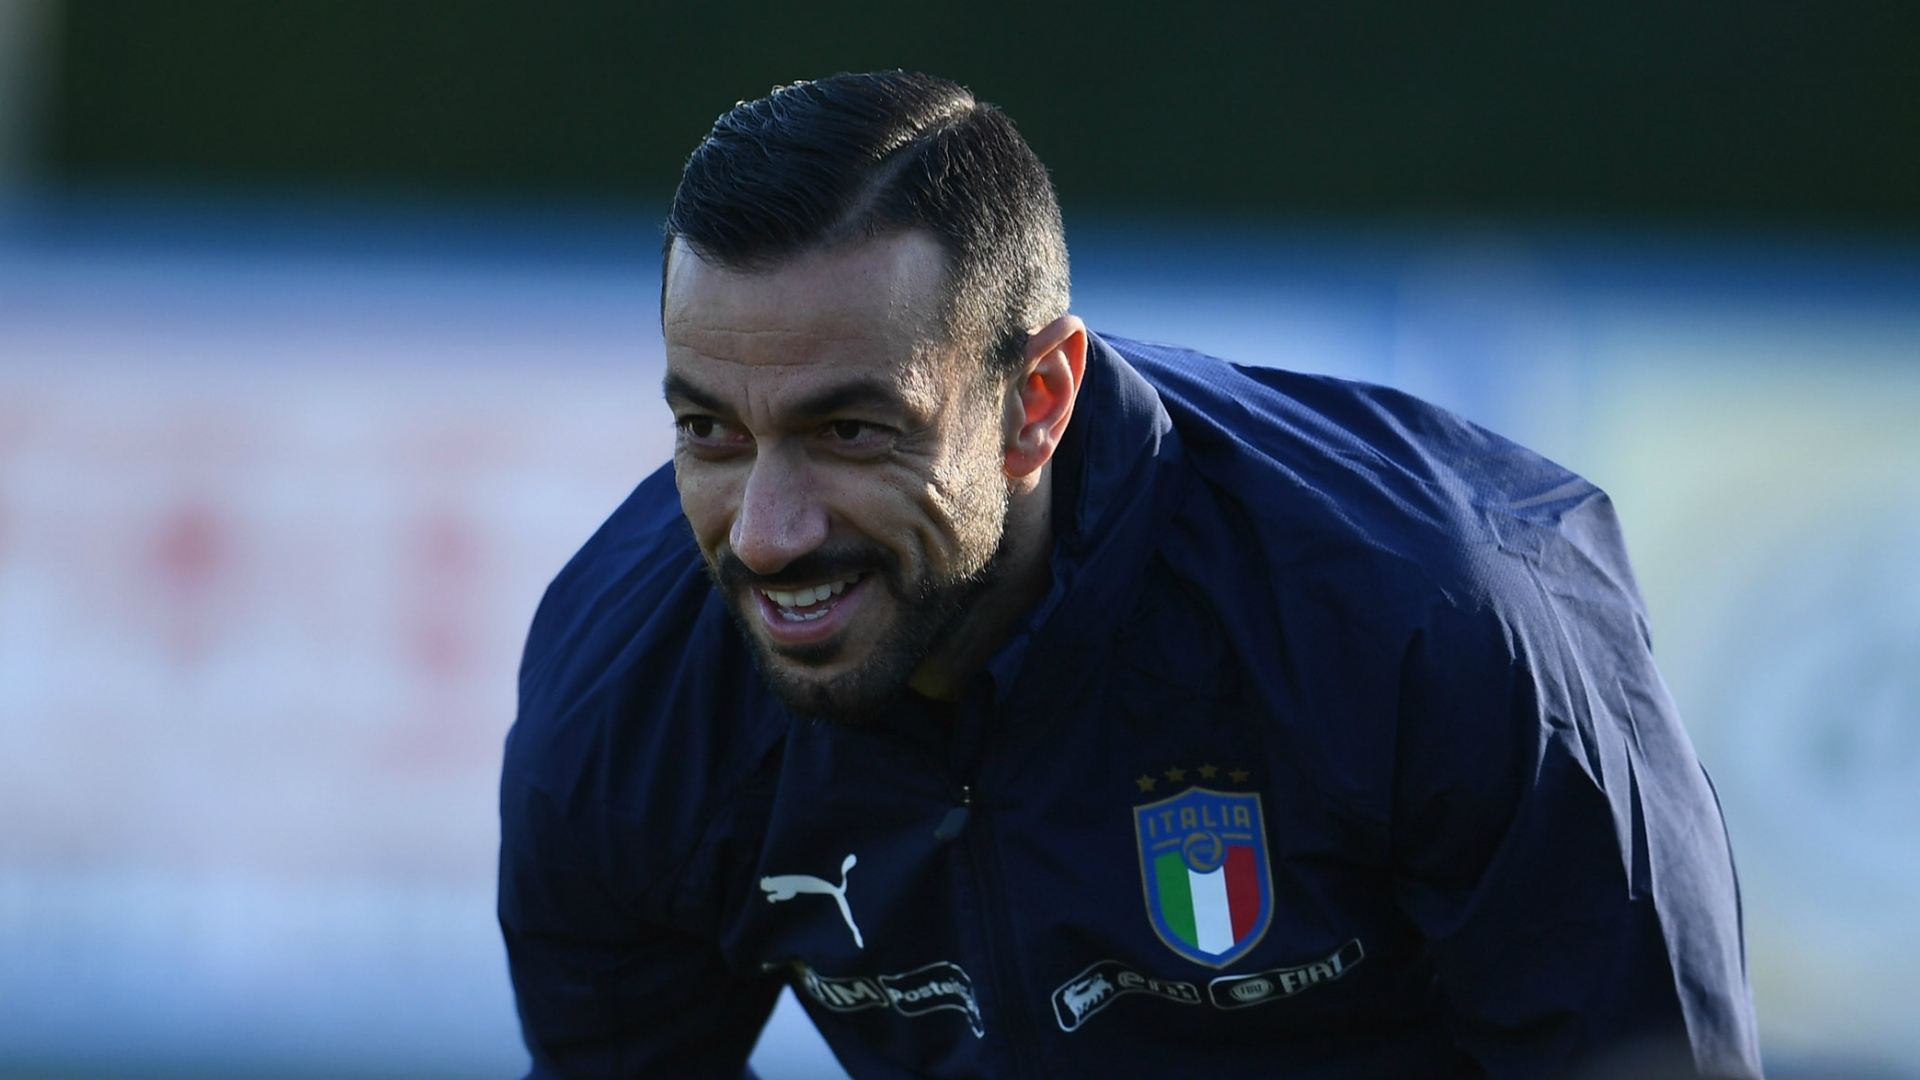 Fabio Quagliarella, oneof the best players in the Serie A, at 36 years old